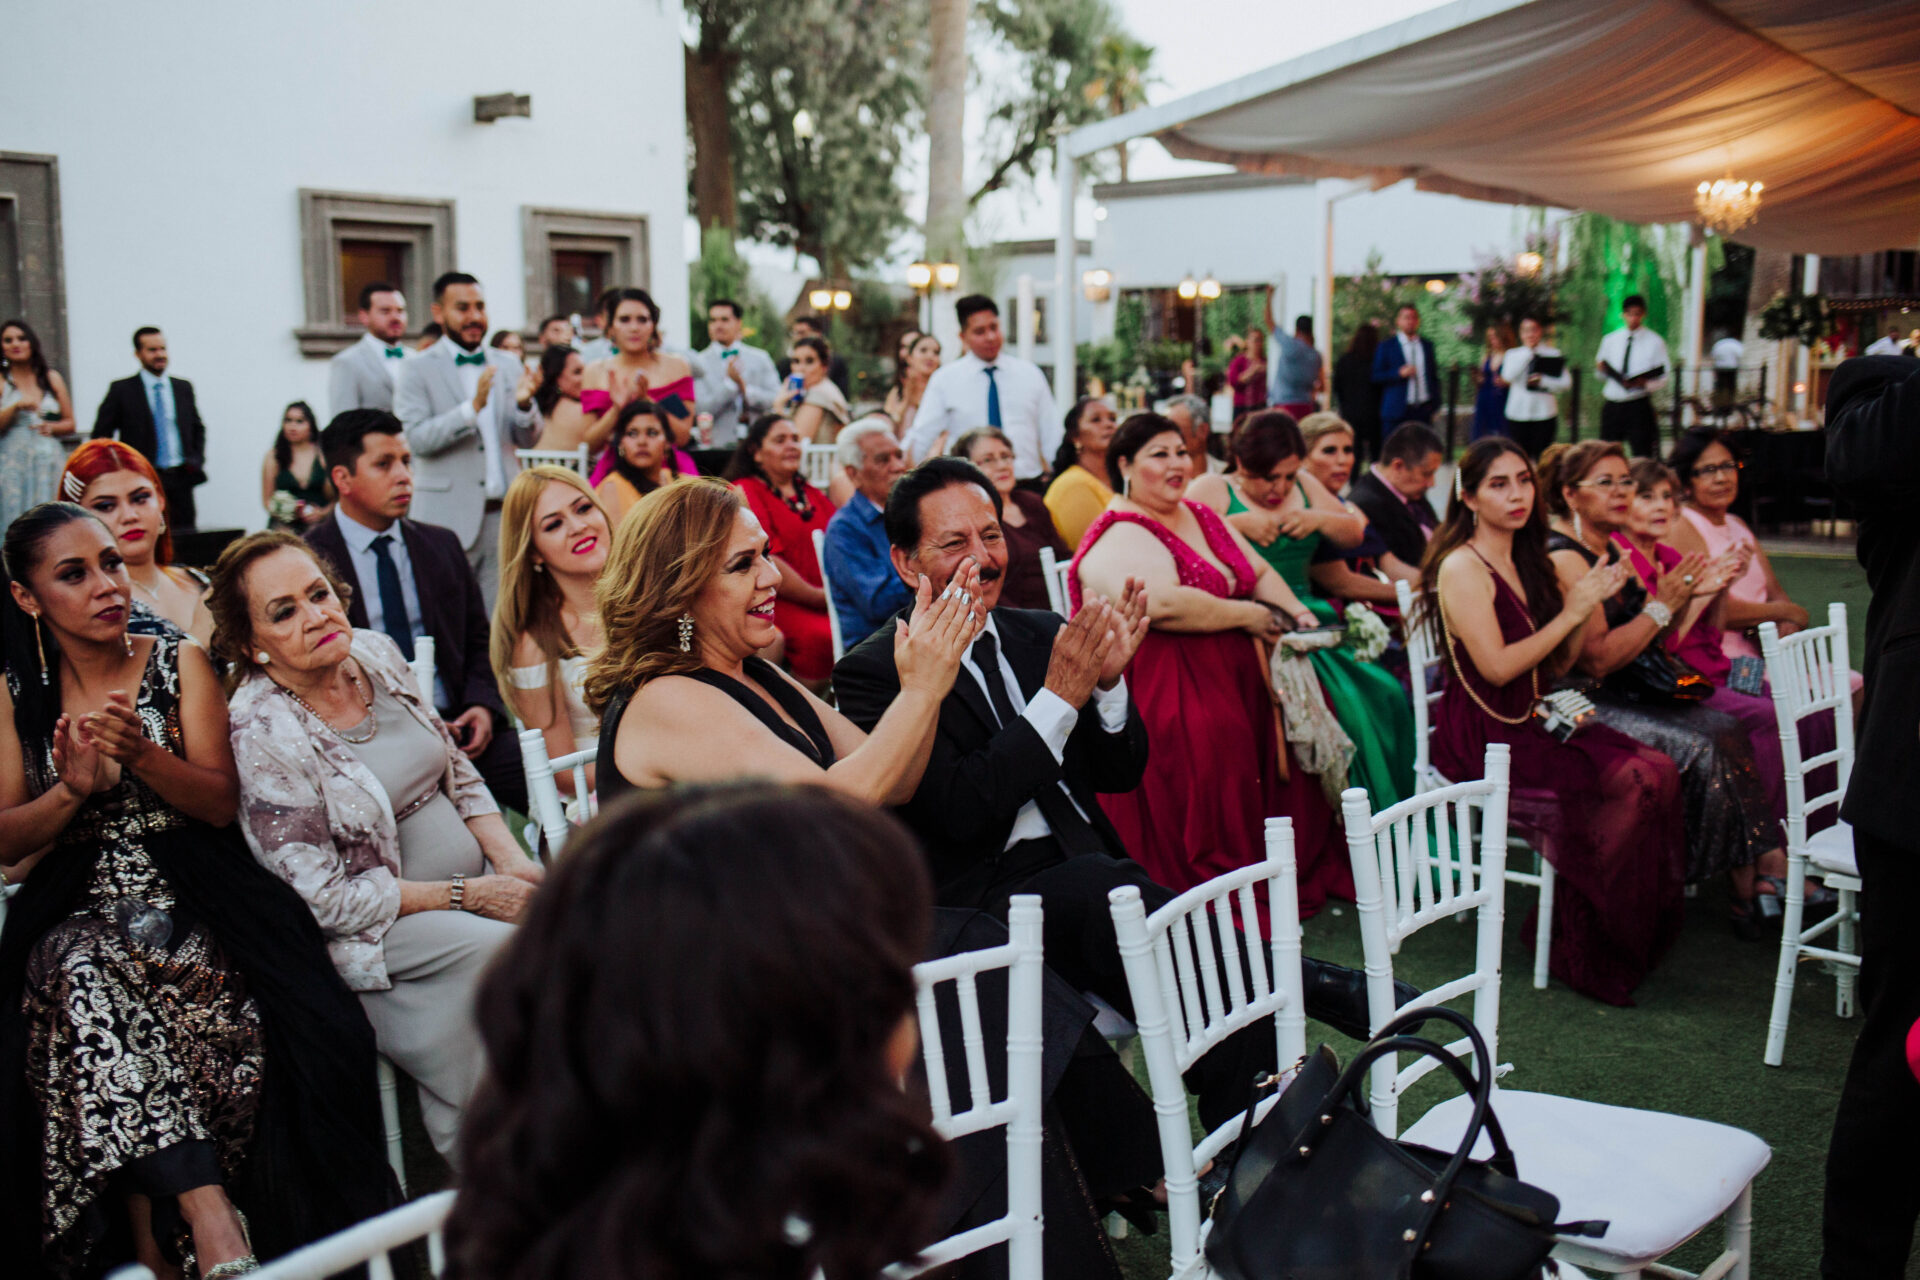 javier_noriega_fotografo_bodas_torreon_coahuila_zacatecas_wedding_photographer39a